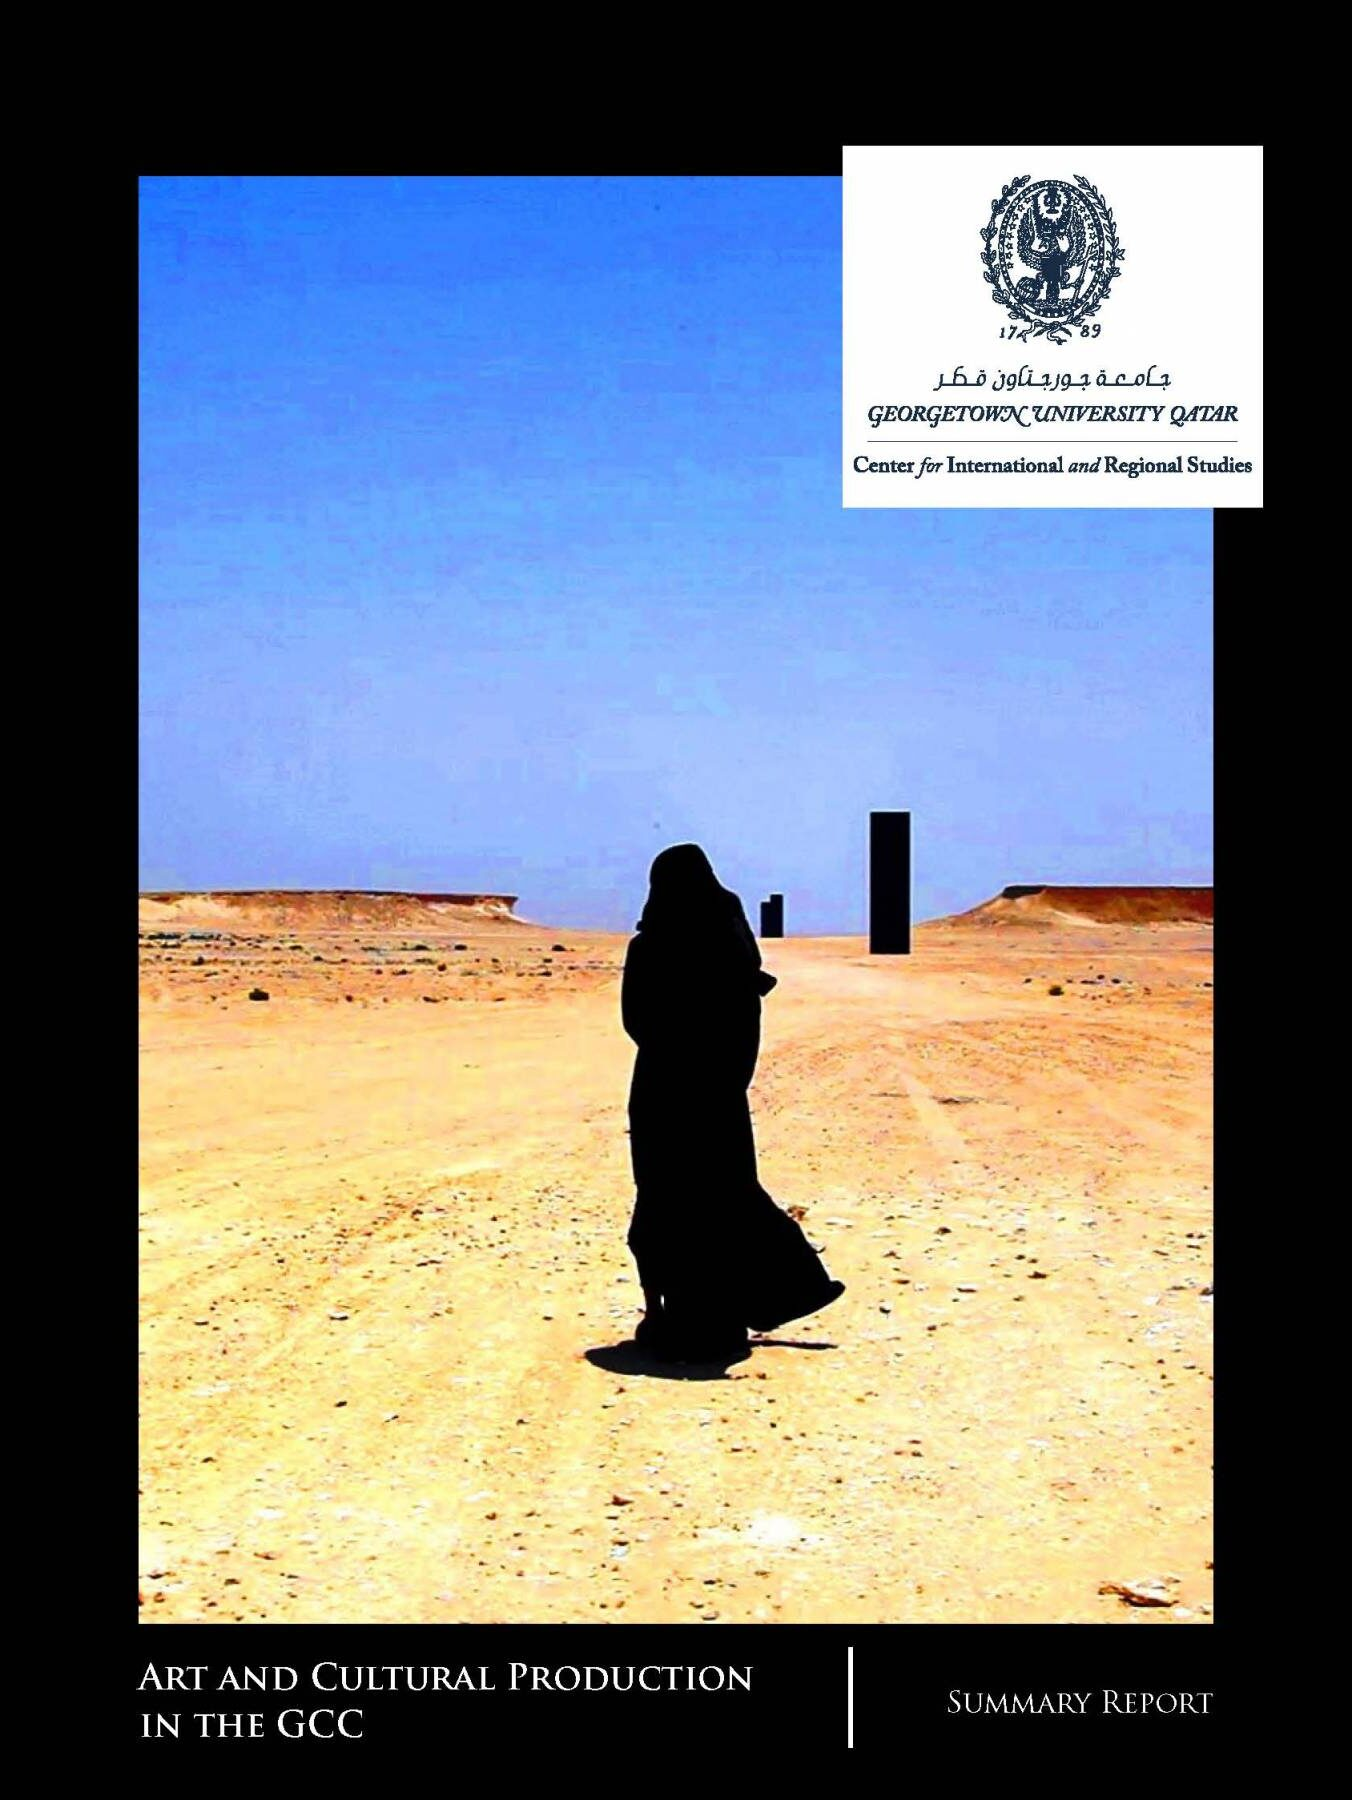 Art and Cultural Production in the GCC